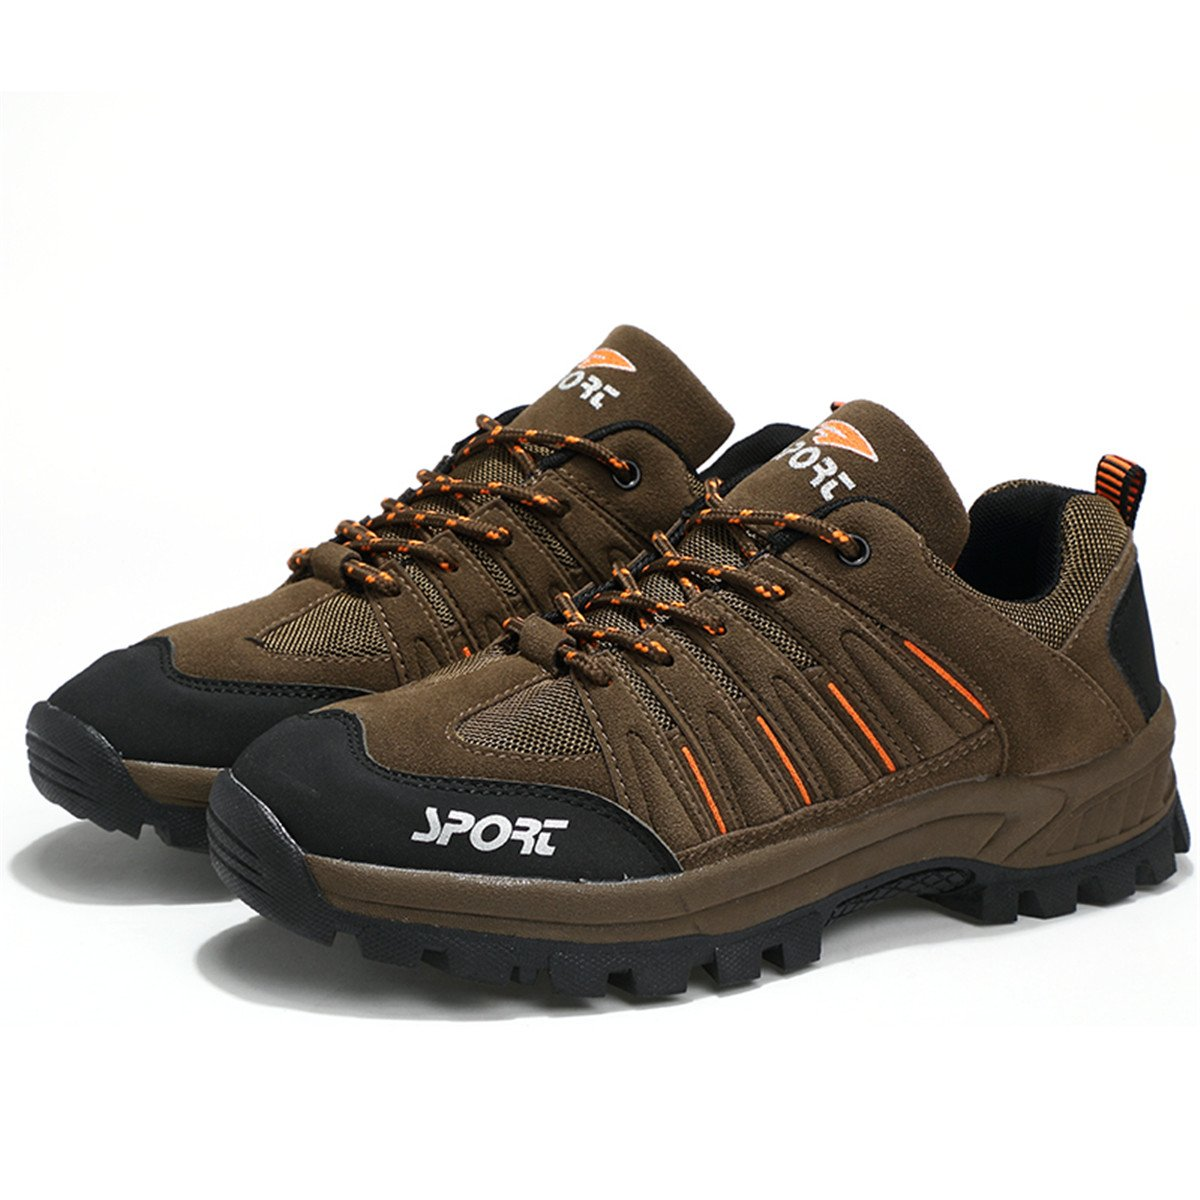 KUO LI Men's Waterproof Backpacking Shoes Non-slip Hiking Shoes Caravan Shoes China